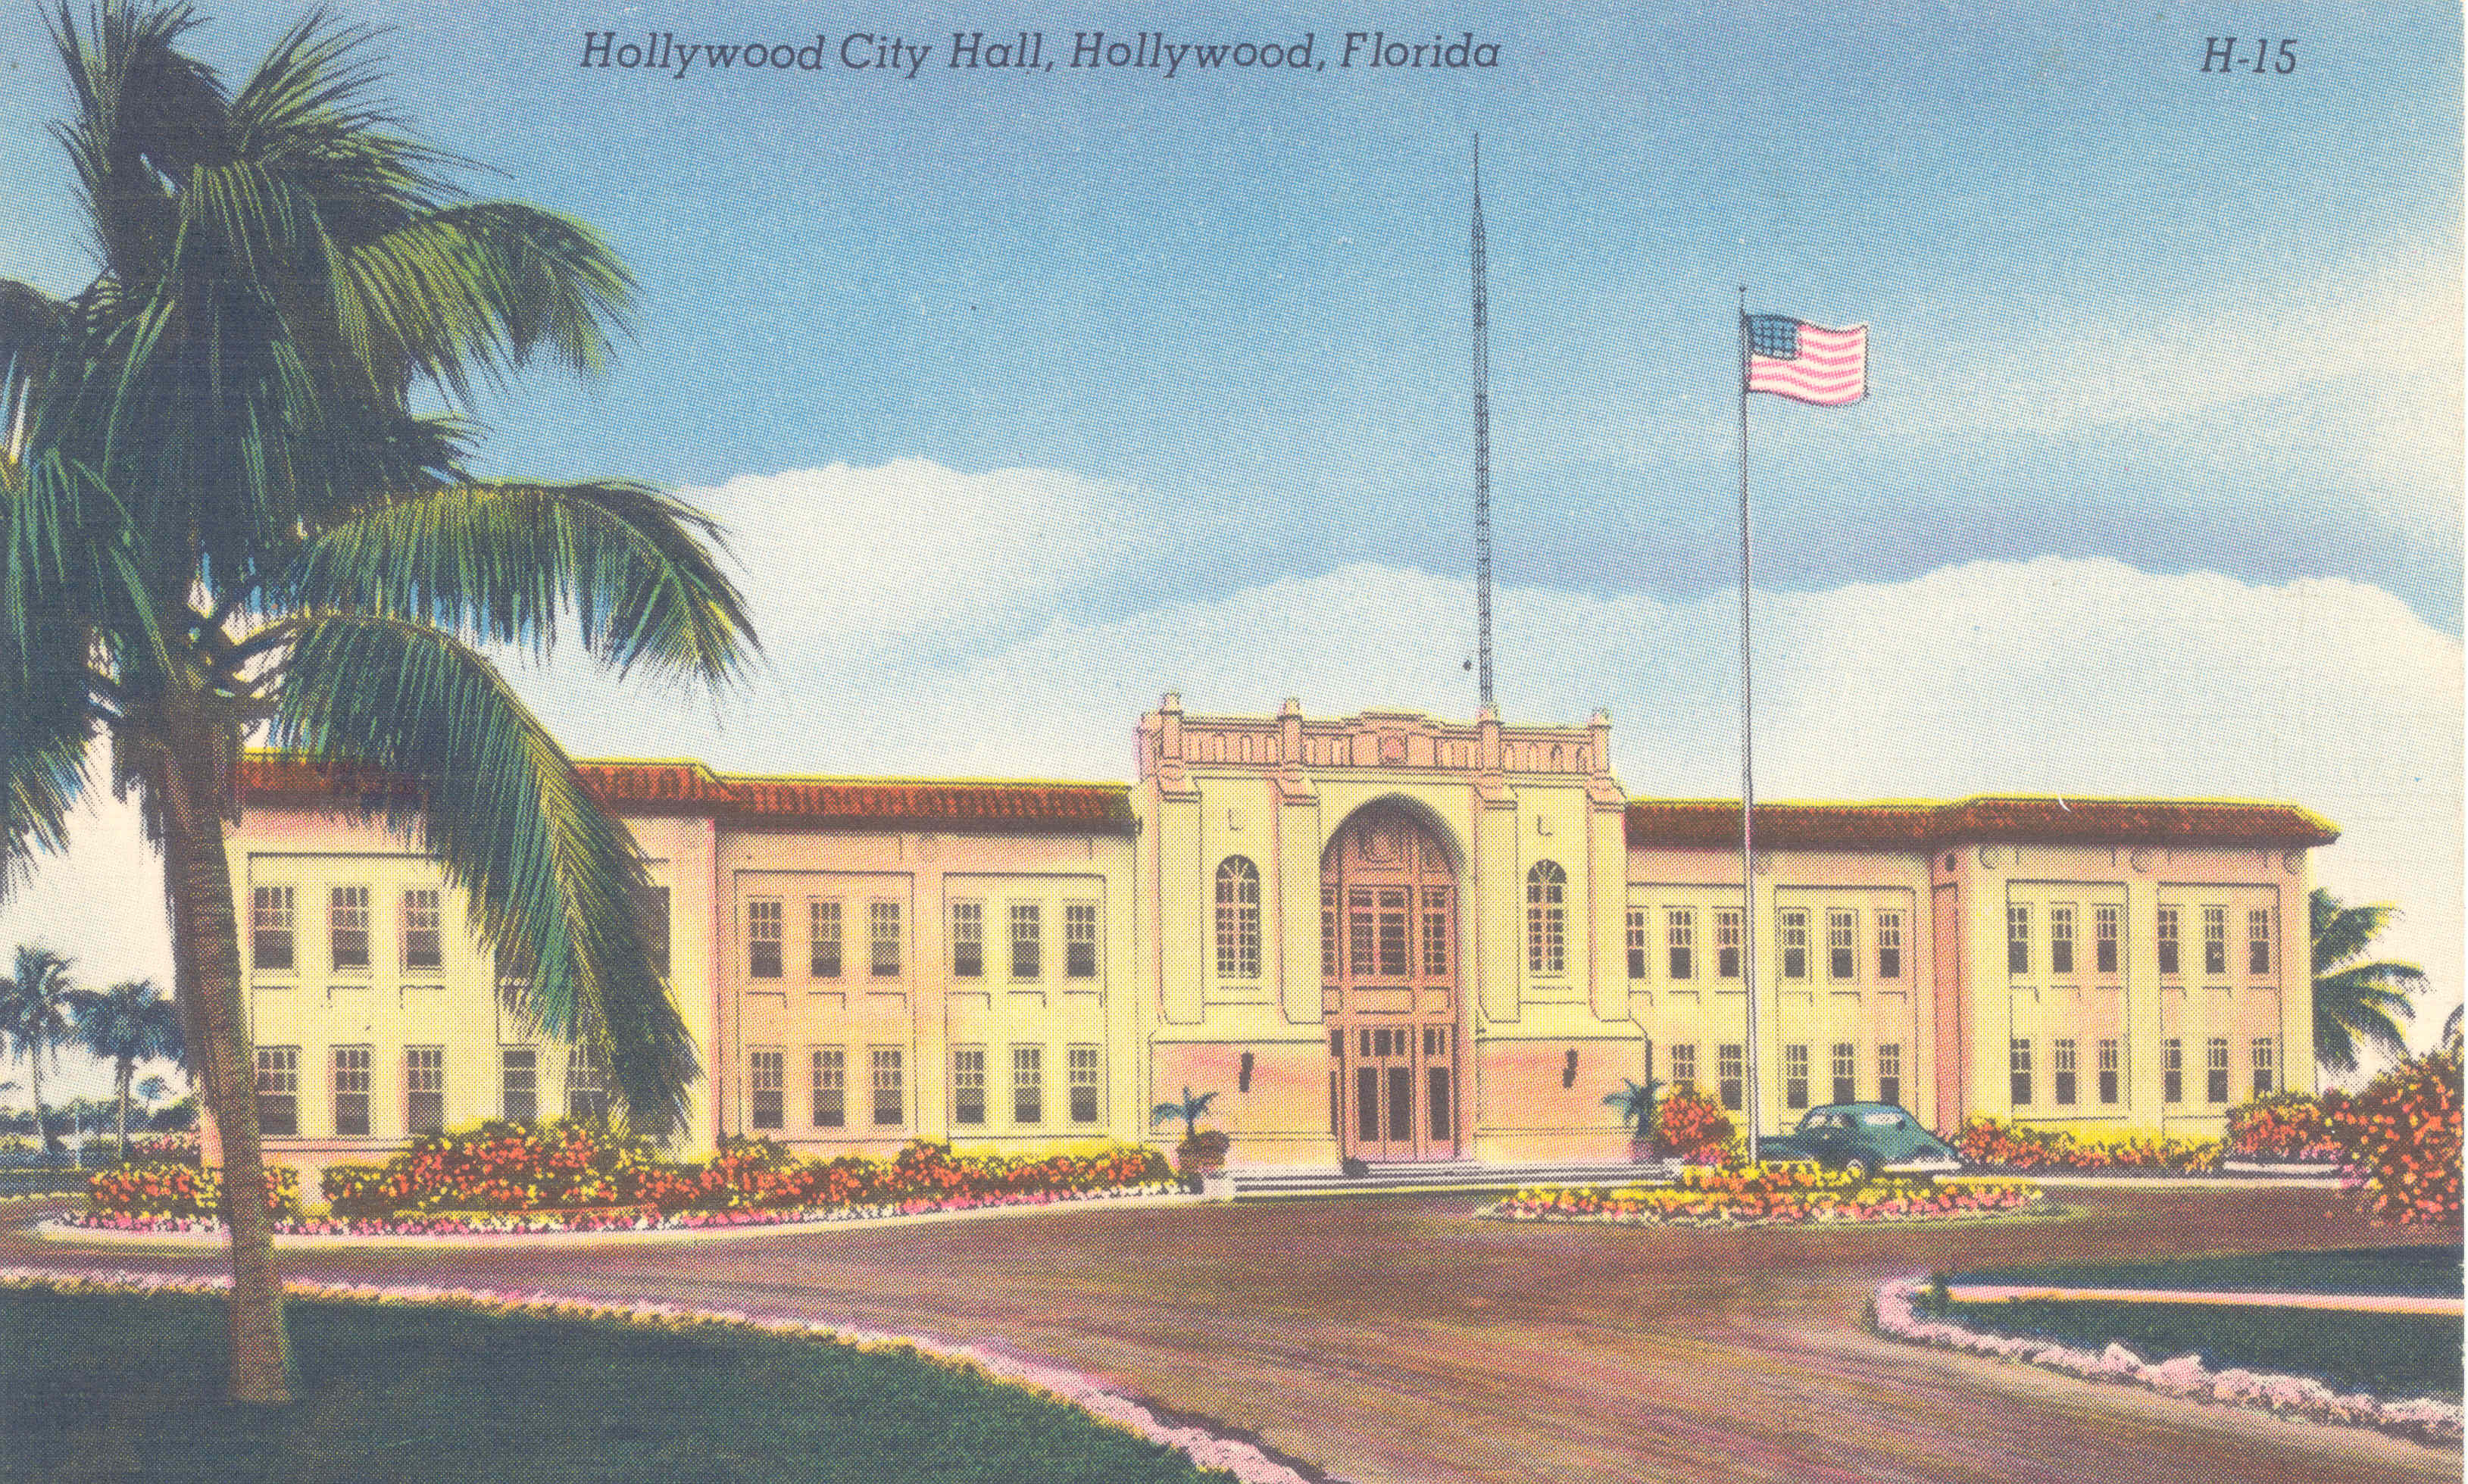 Hollywood City Hall